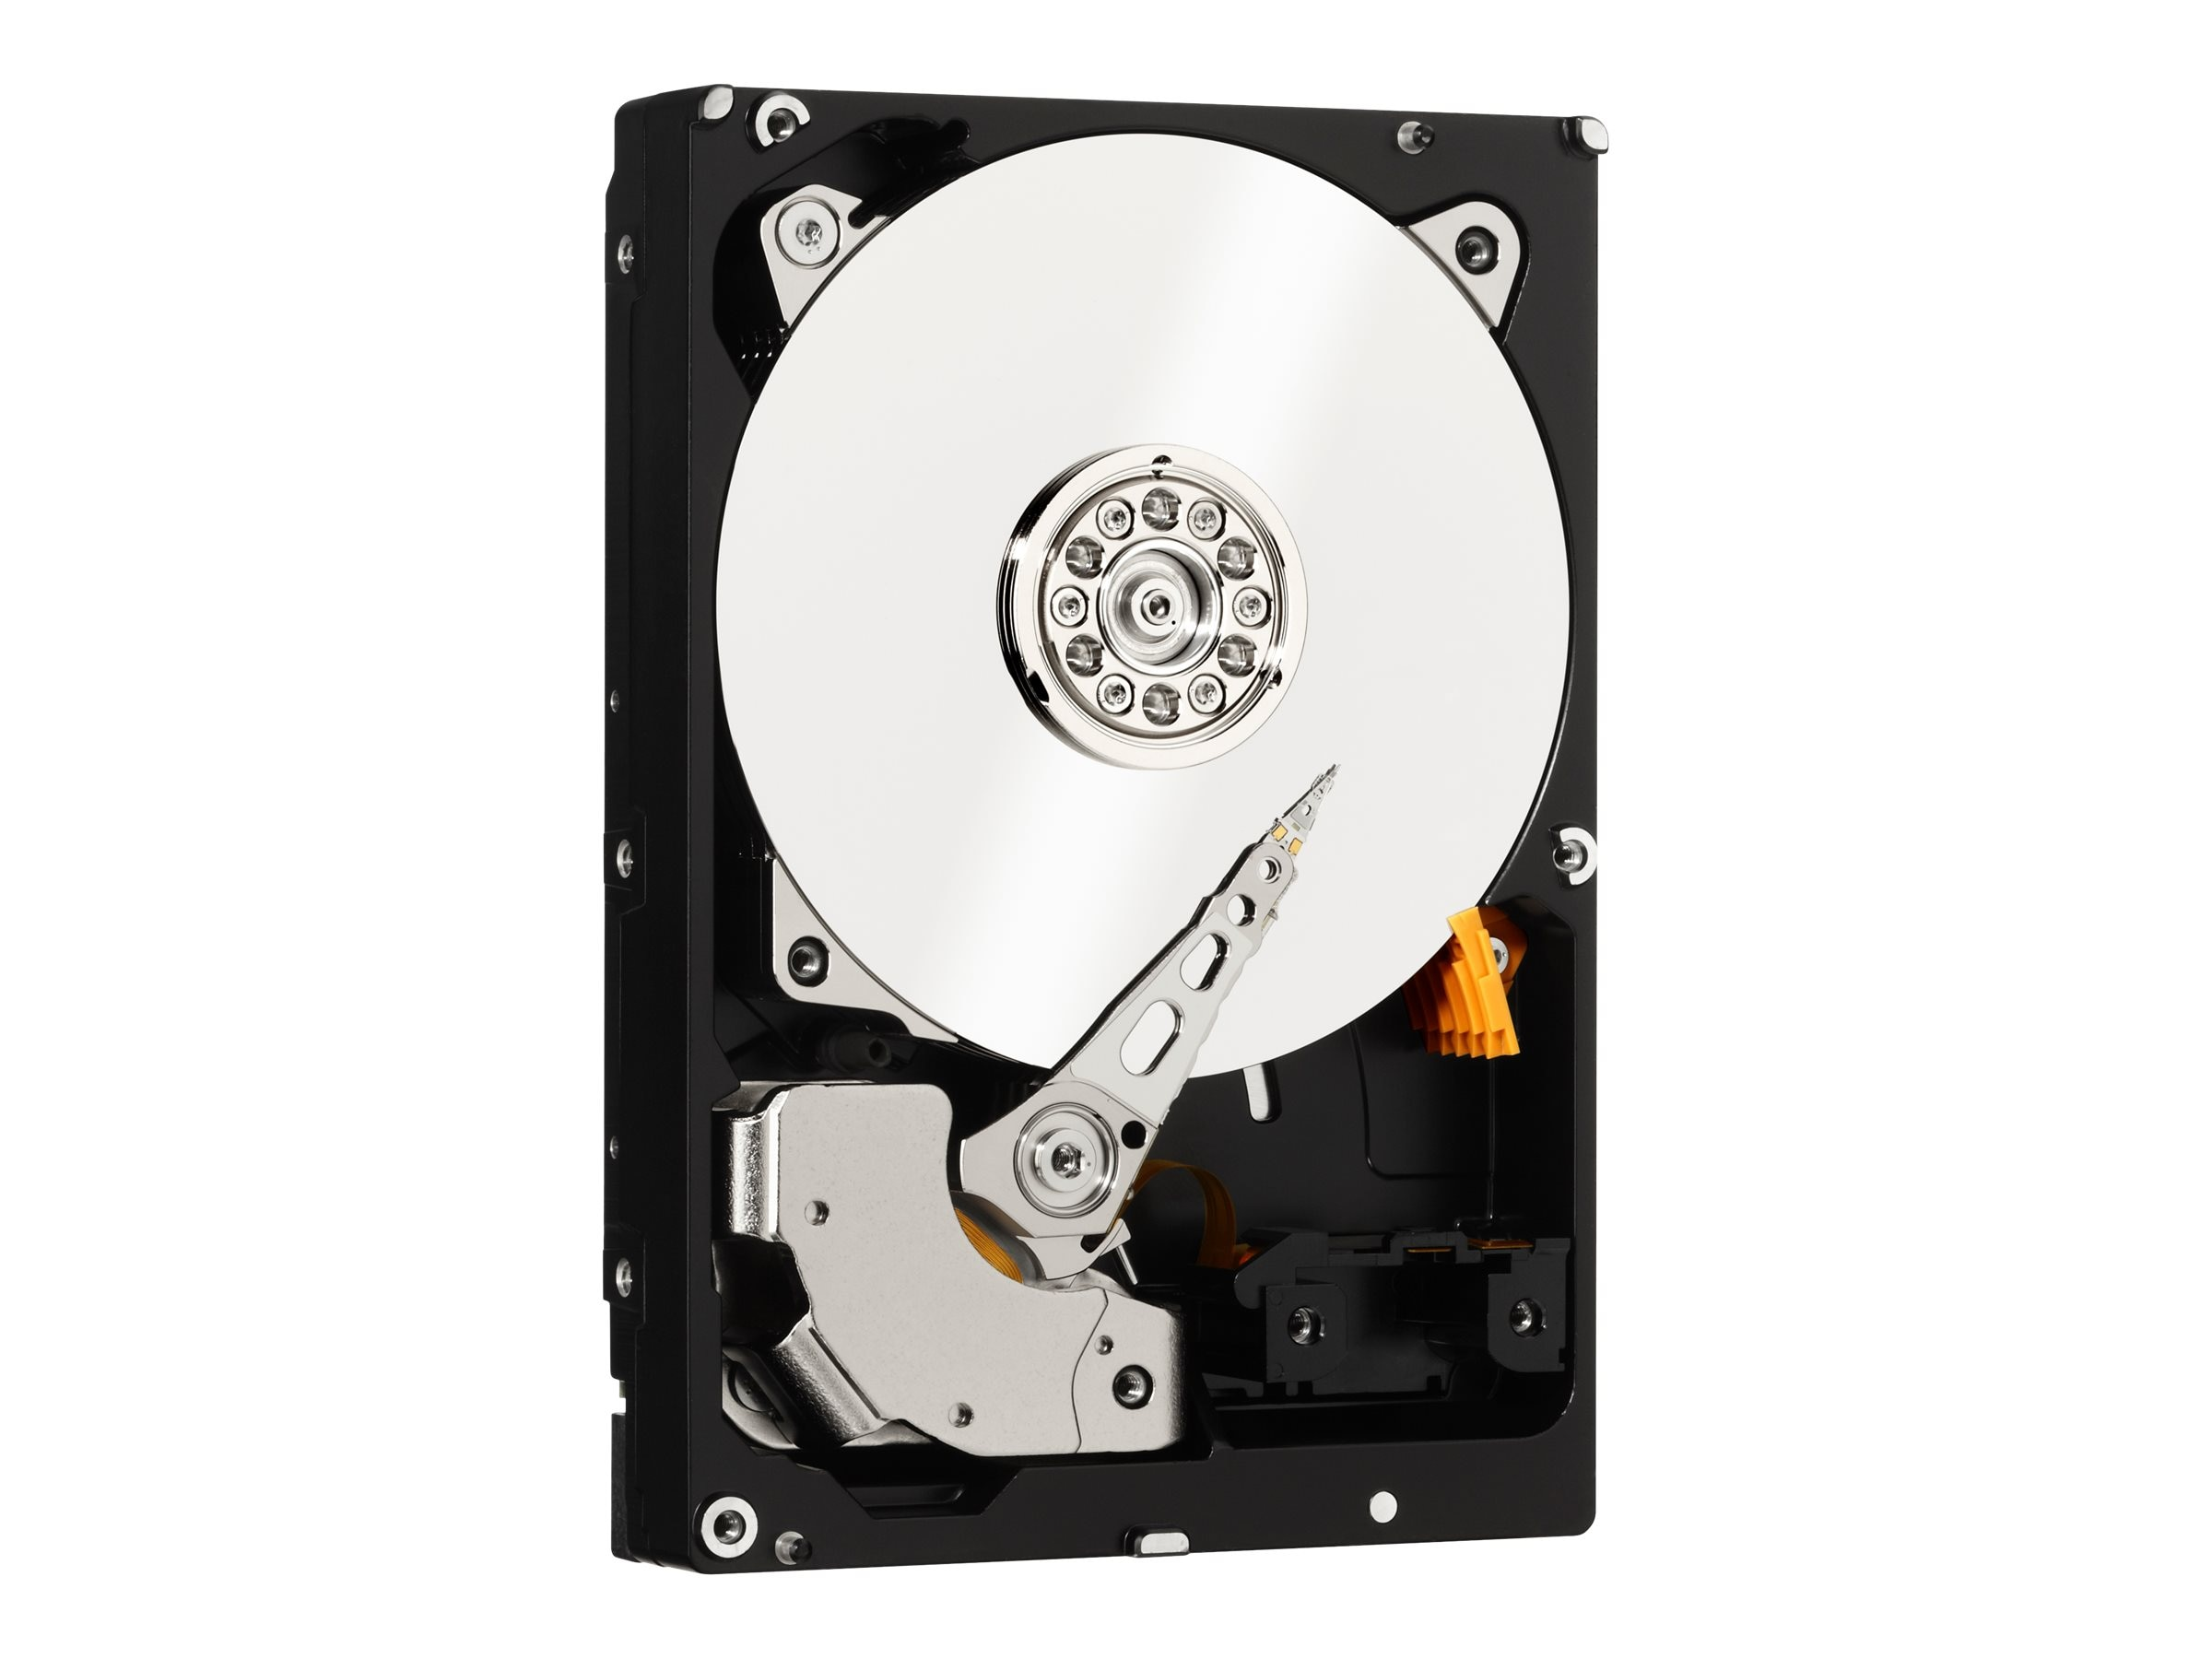 WD 250GB WD RE SATA 6Gb s 3.5 Internal Hard Drive - 64MB Cache, WD2503ABYZ